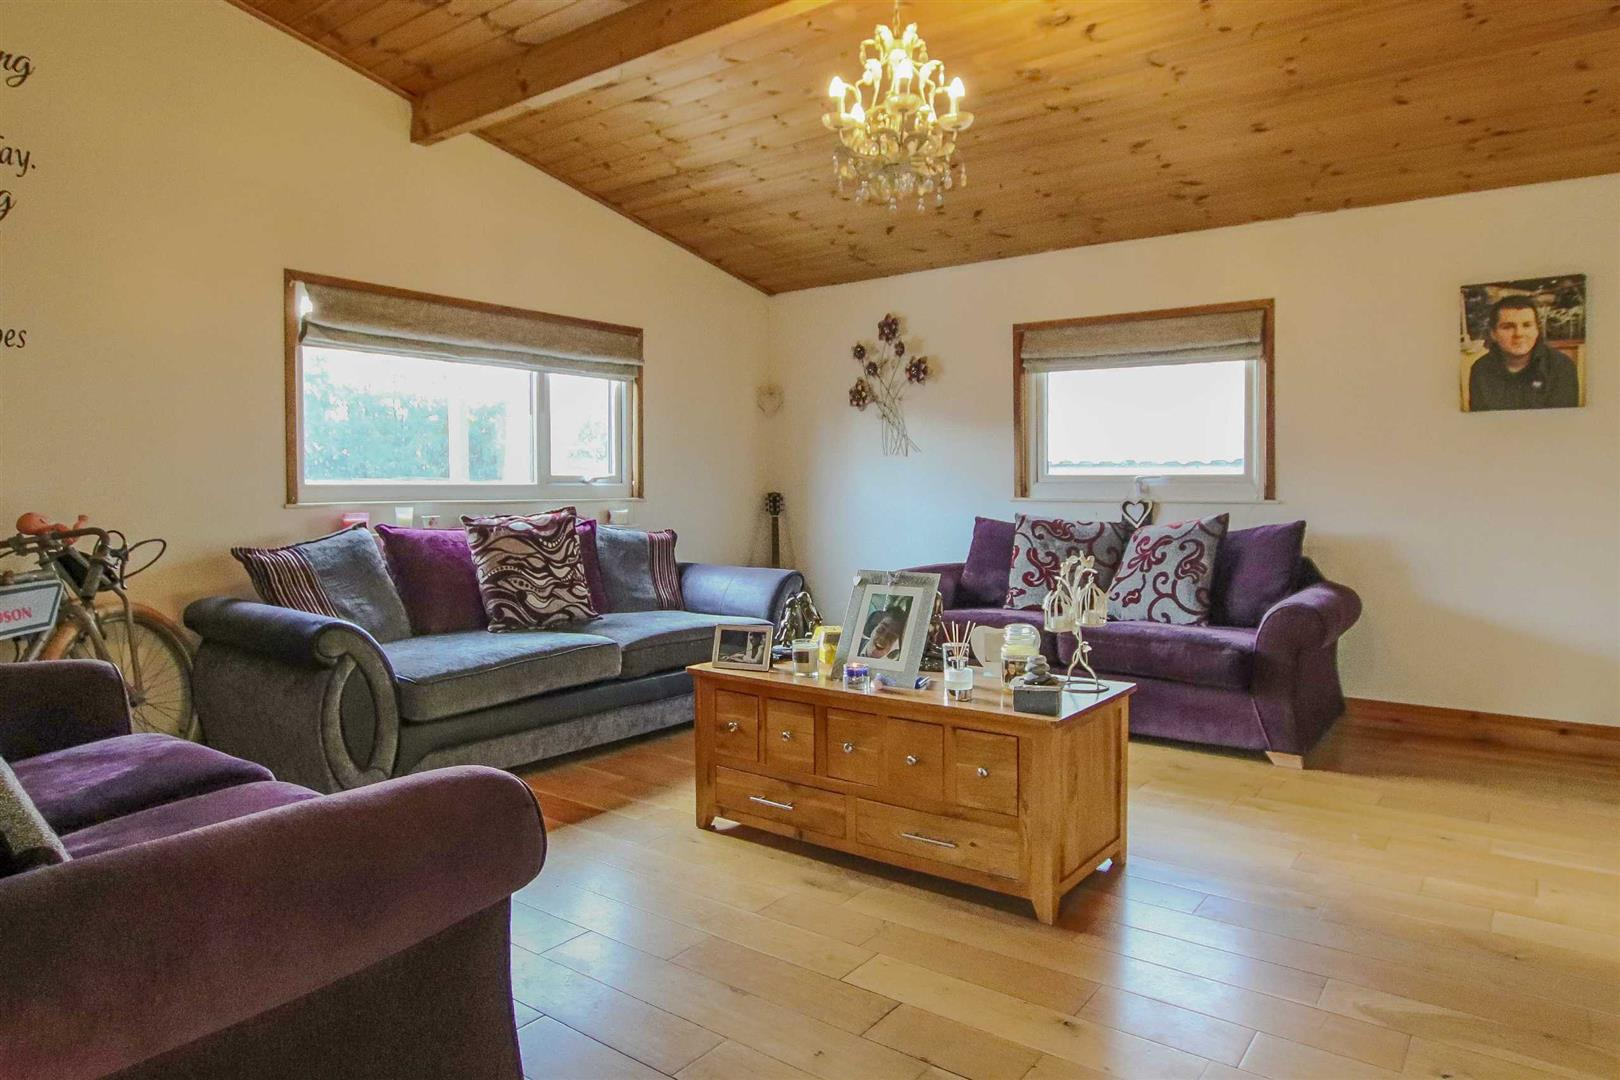 9 Bedroom Barn Conversion For Sale - Image 5